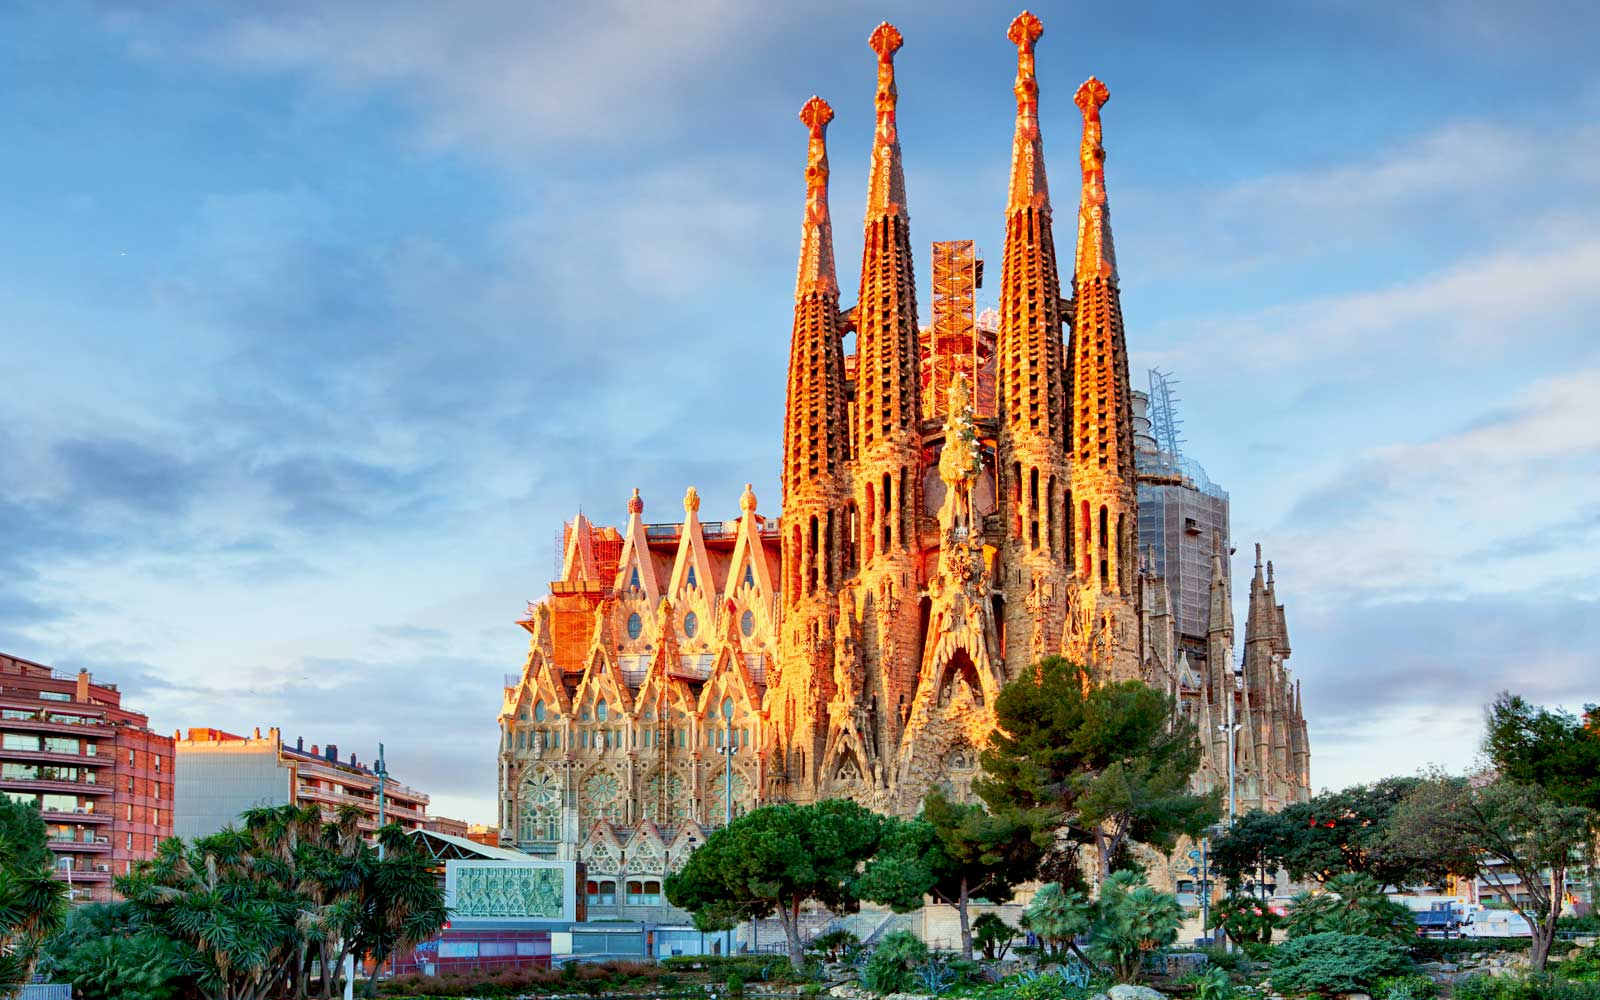 Barcelona's Sagrada Familia Has to Pay 136 Years' Worth of Fines Because It Didn't Have a Building Permit (Video)